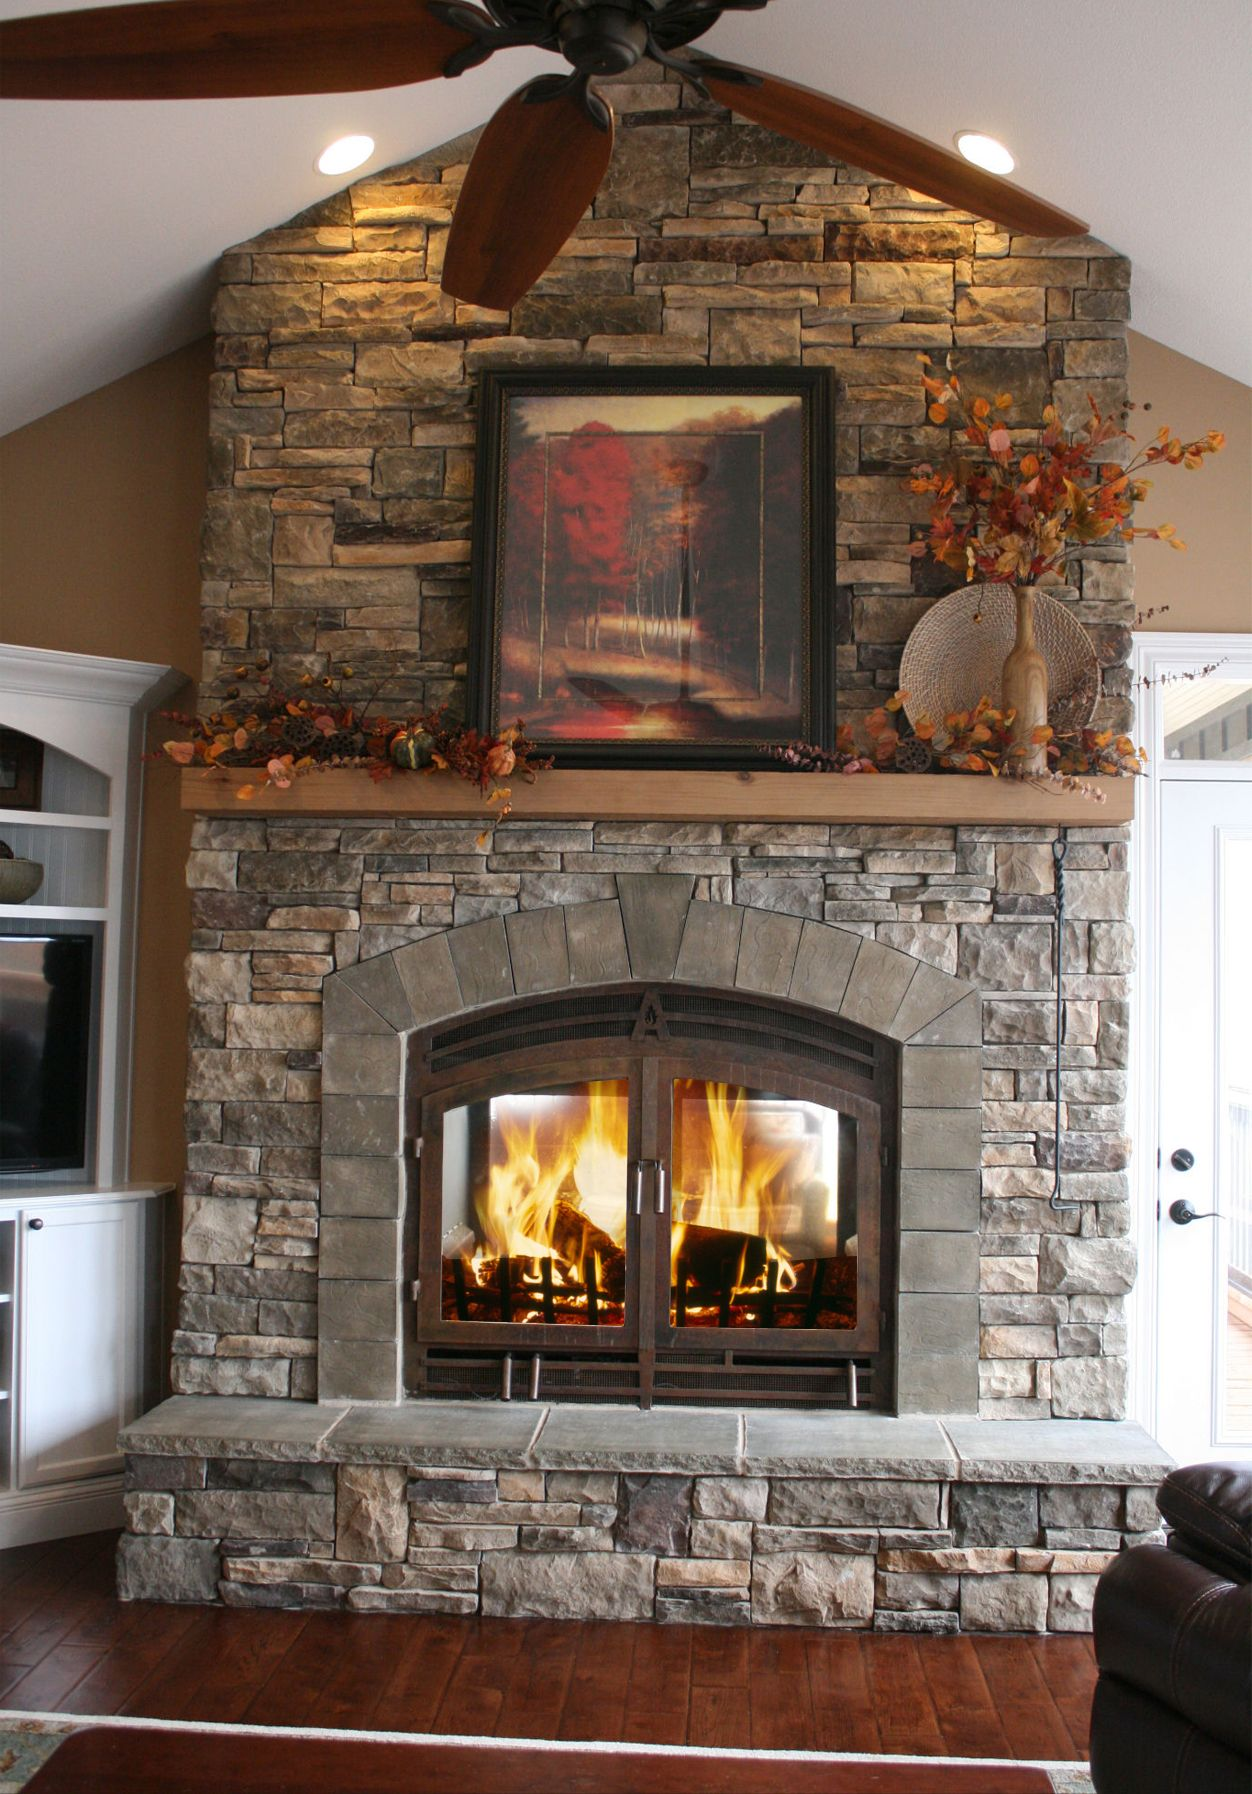 87533694a665d84dc3e8ea6599391f14 Top Result 50 Unique Best Wood Fireplace Insert